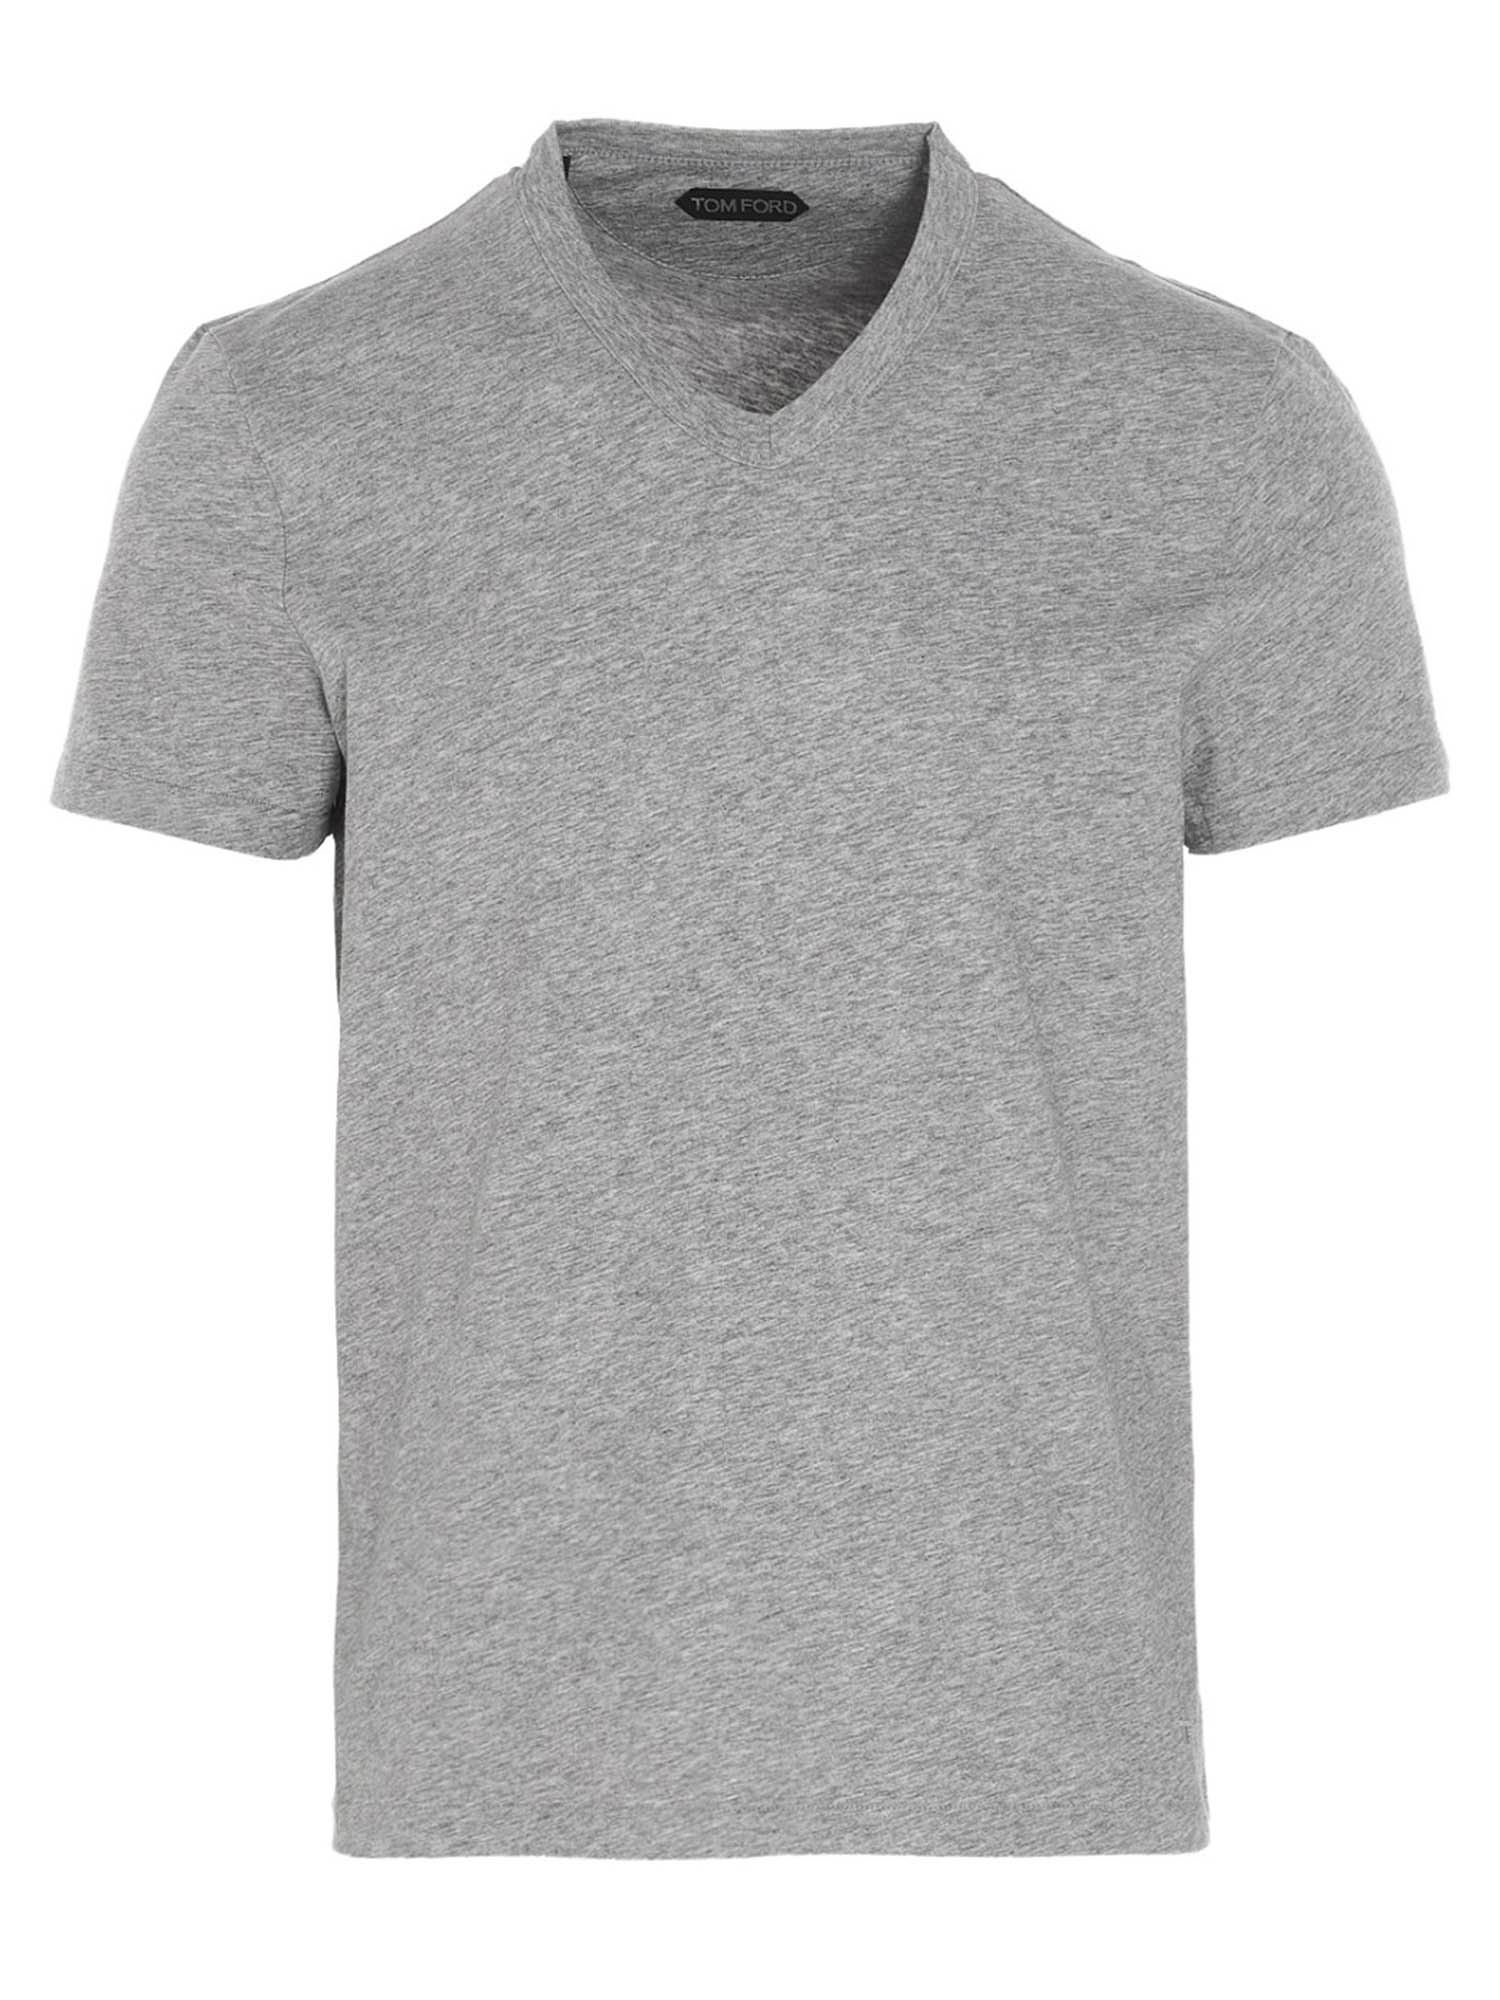 Tom Ford Cottons V-NECK T-SHIRT IN GRAY